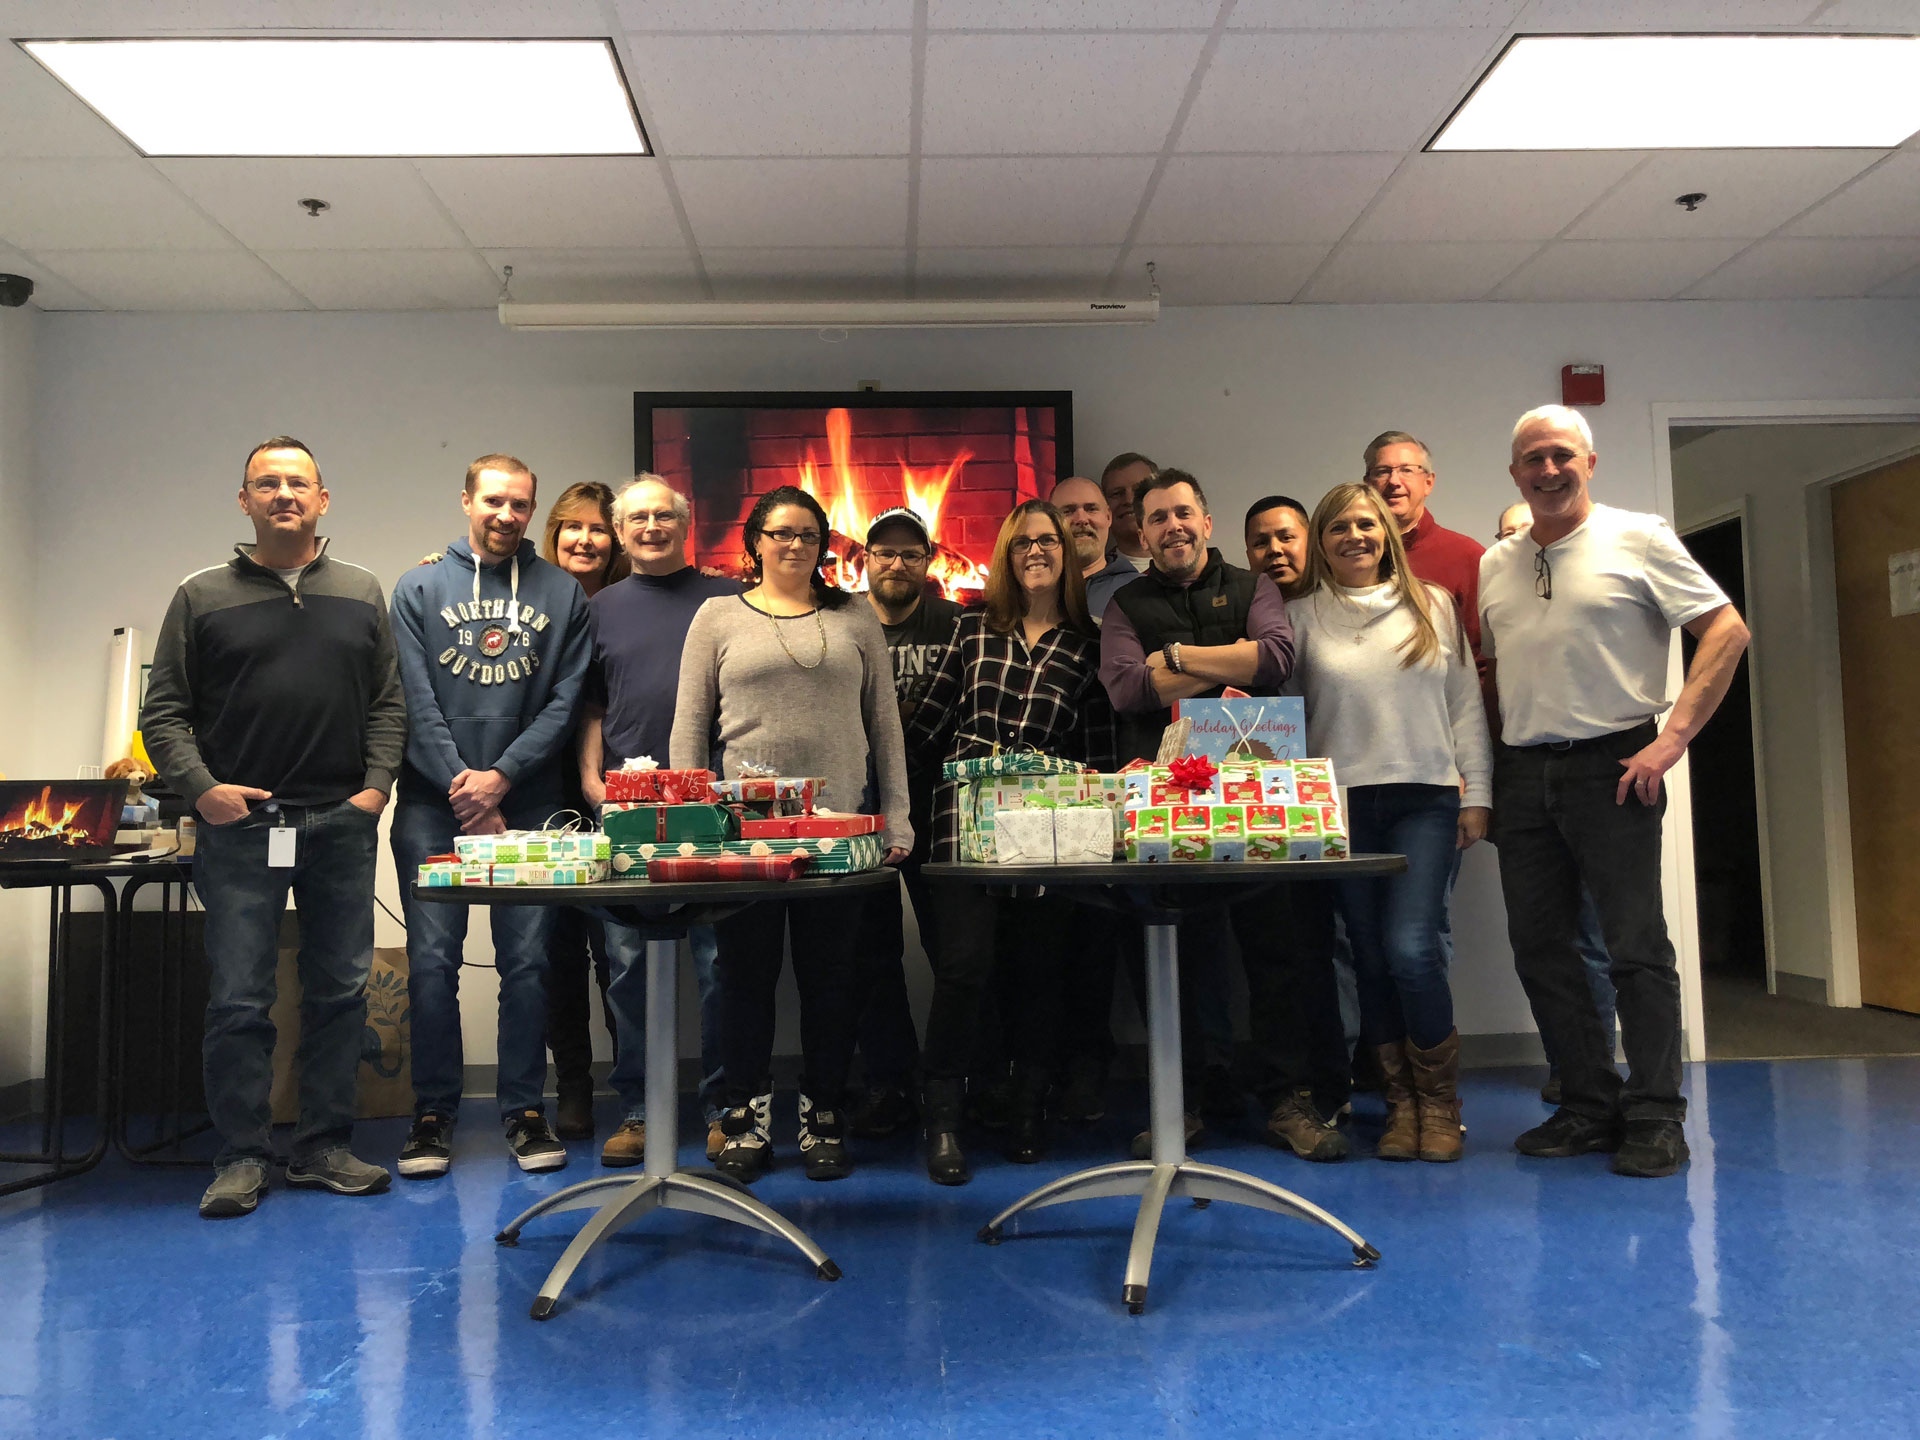 2019: Canvys MA Team supports children in need